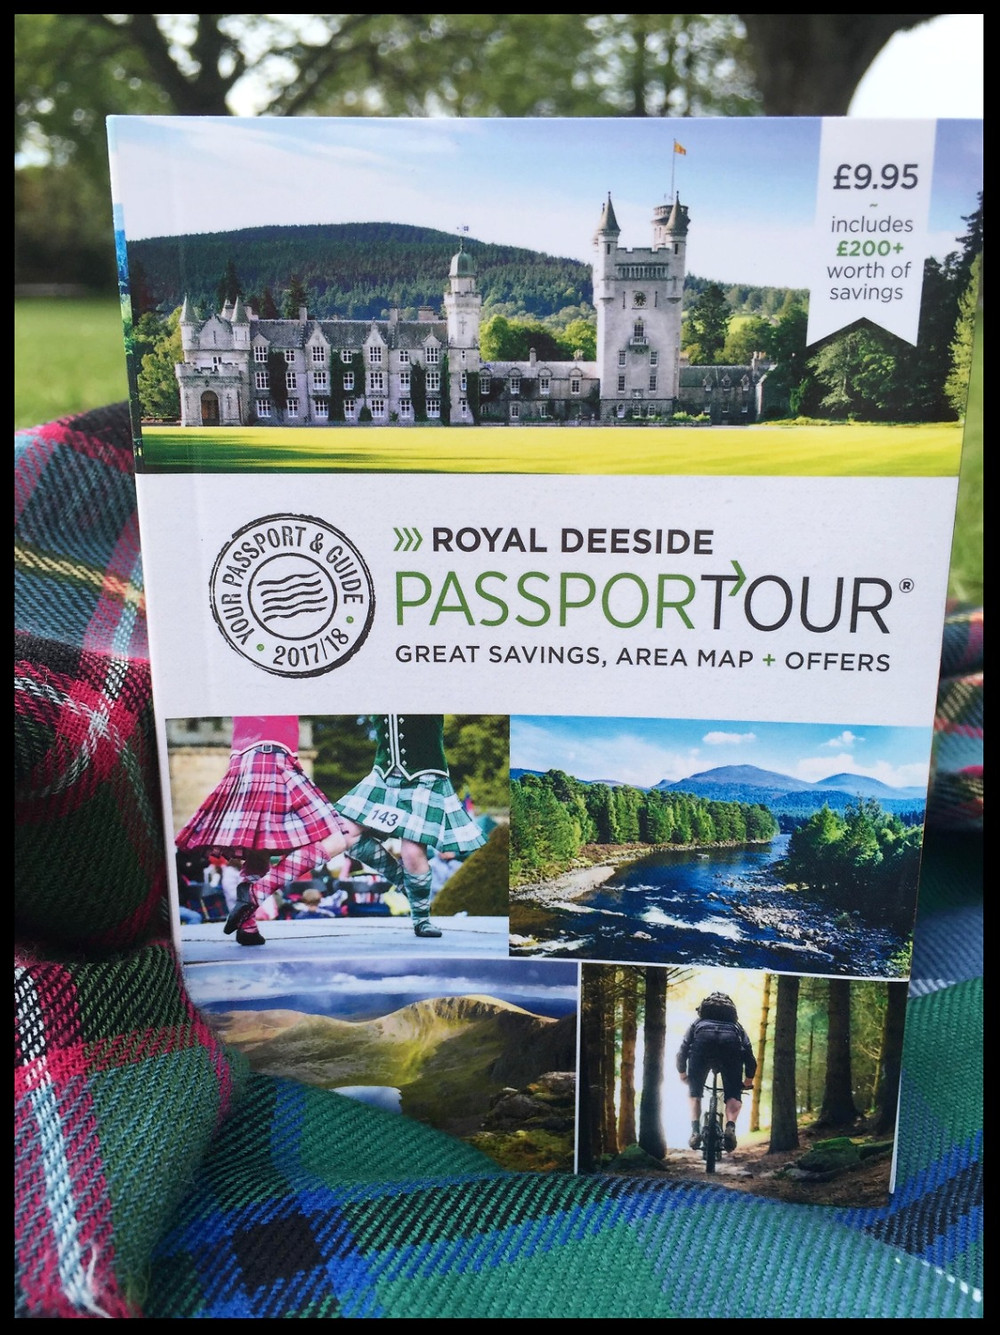 The Royal Deeside PassporTour book